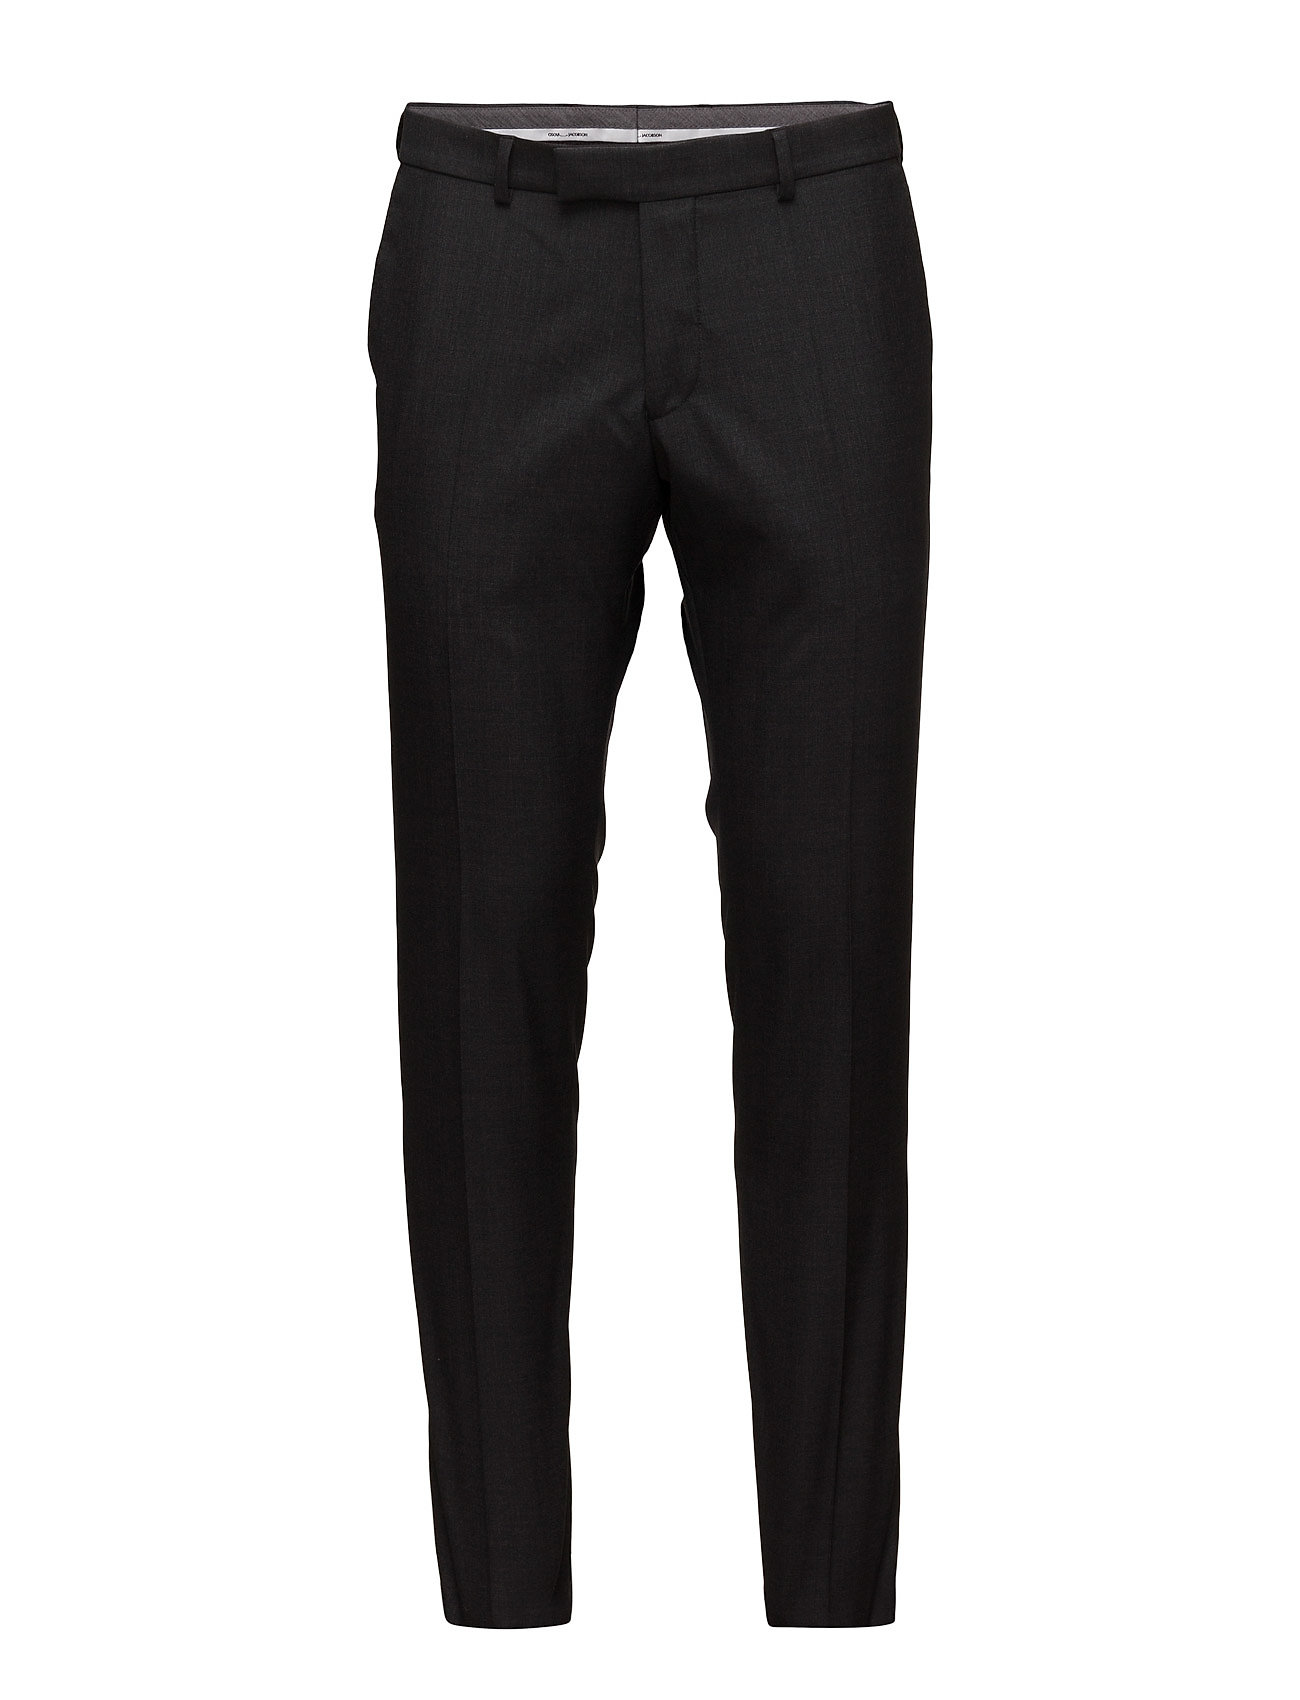 Oscar Jacobson Damien Trousers - 110 - DARK GREY